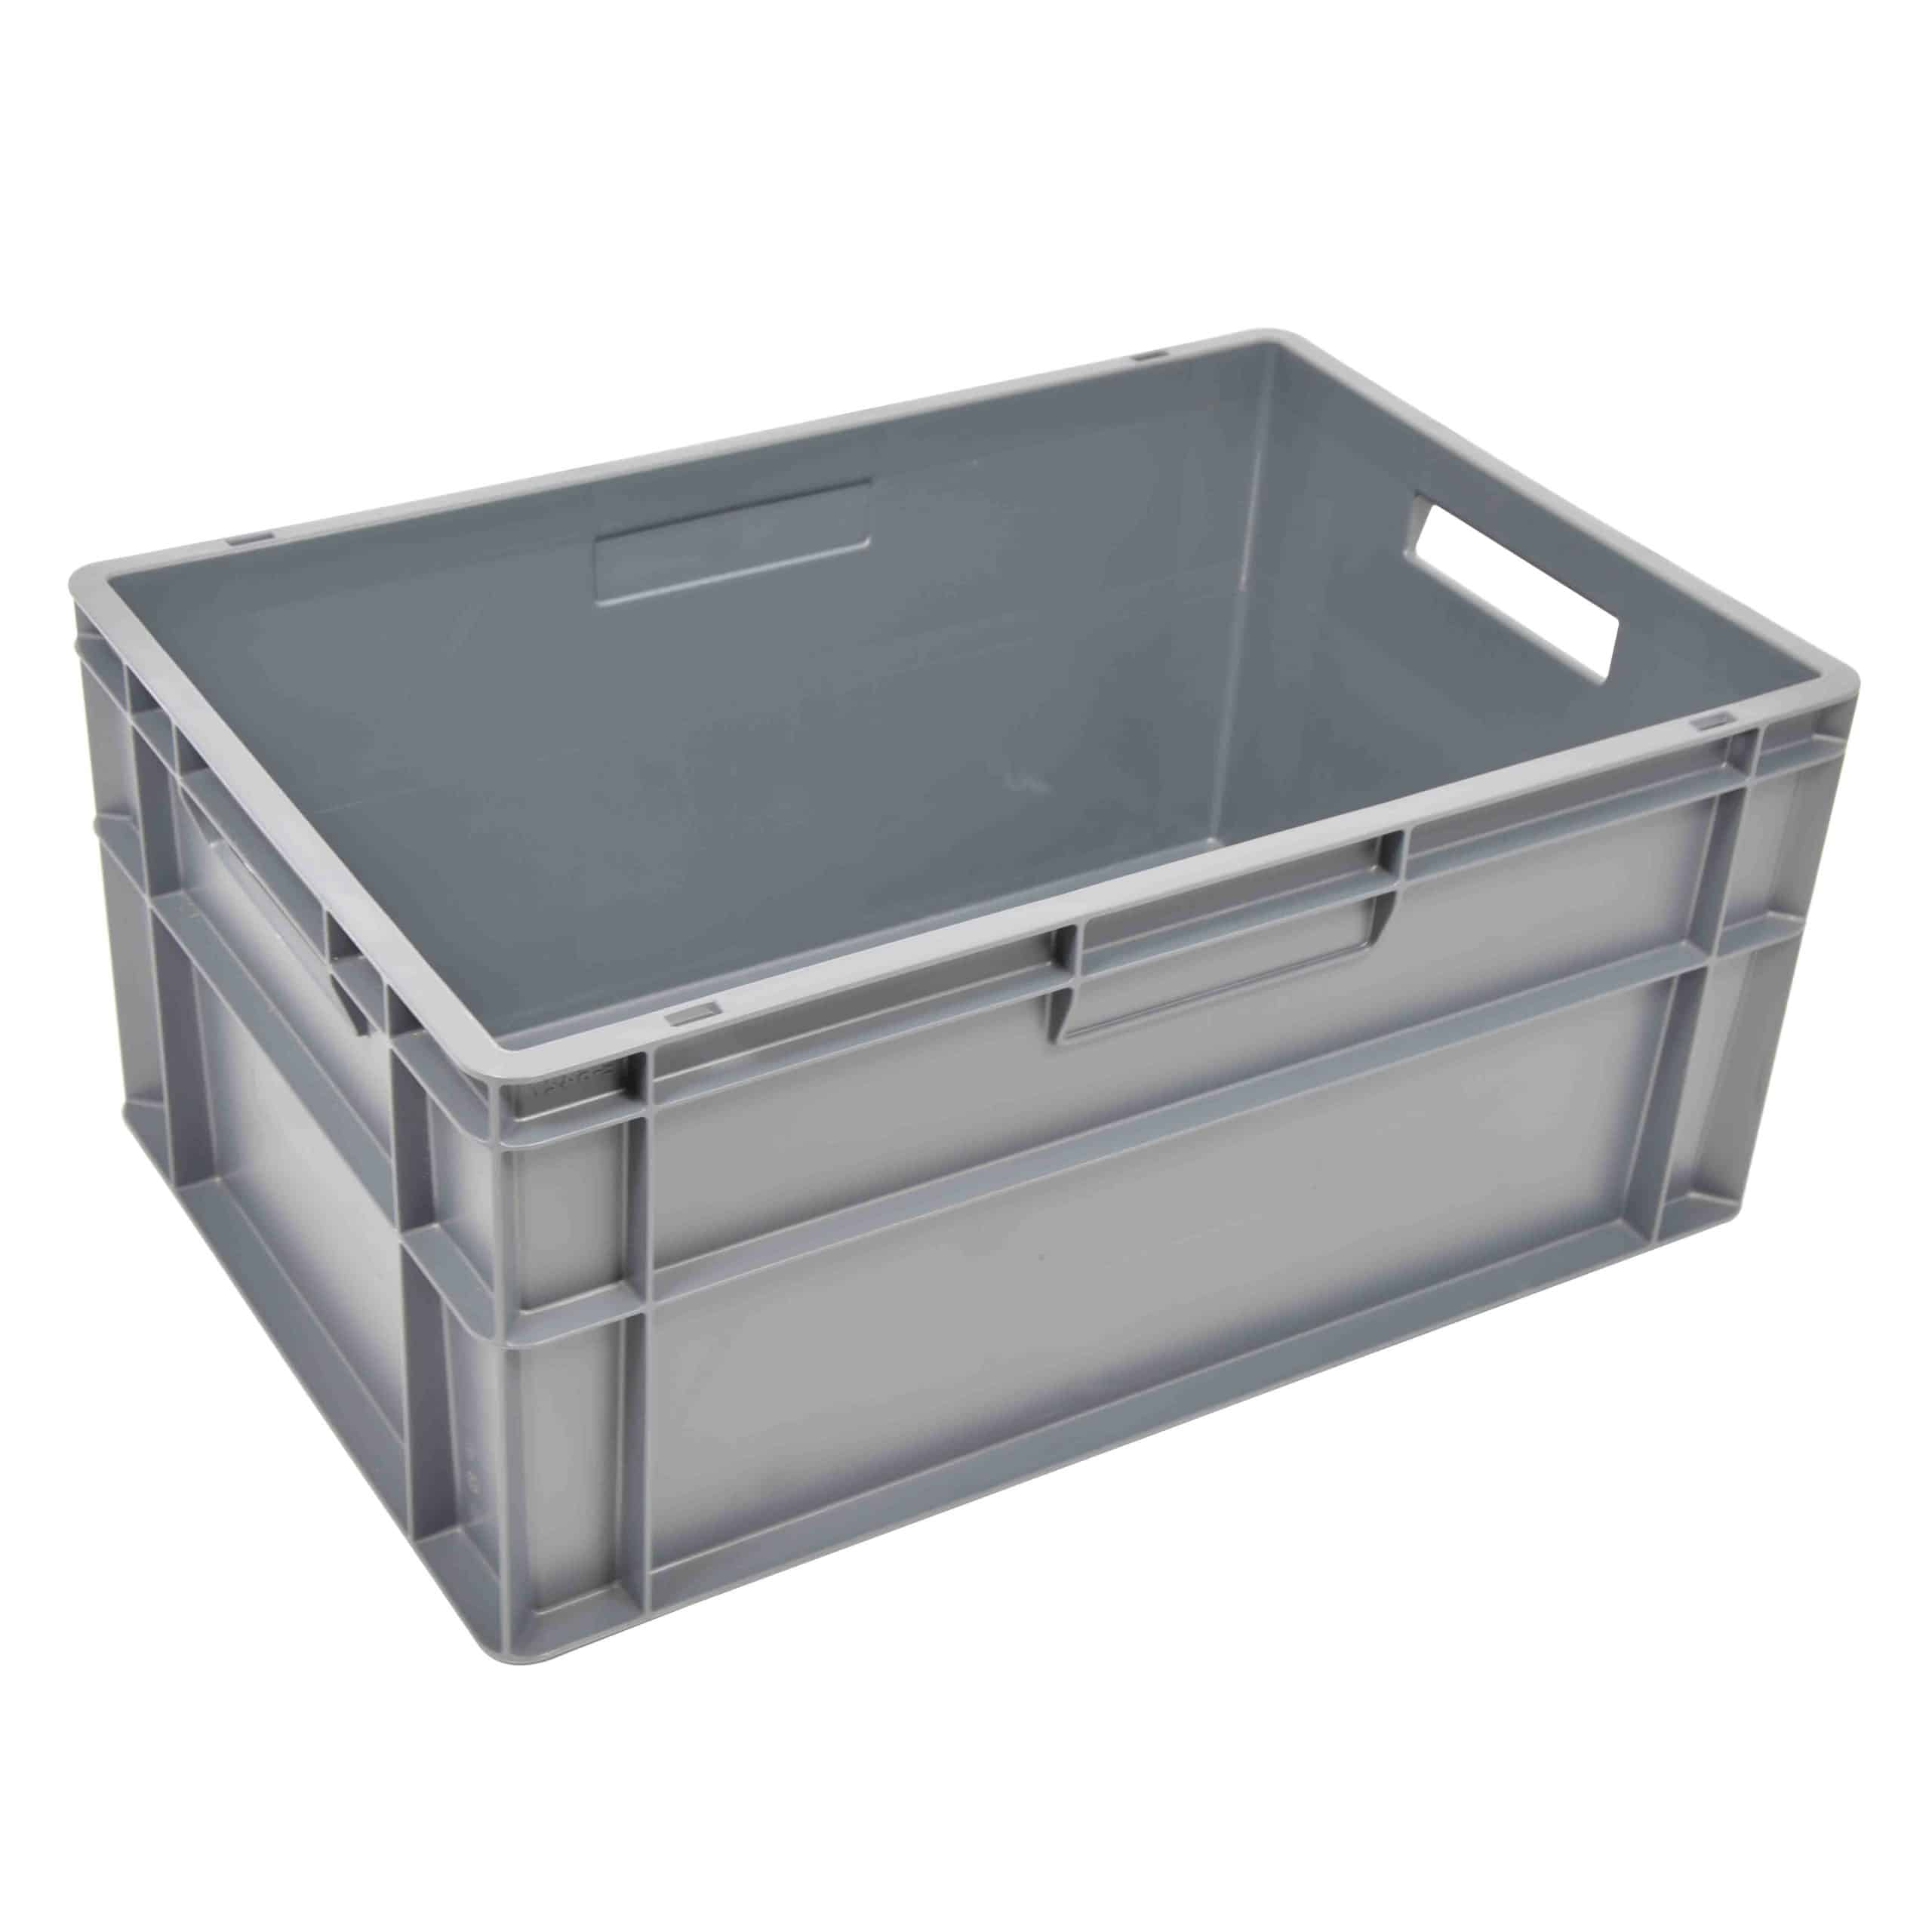 52 Litre Euro Containers